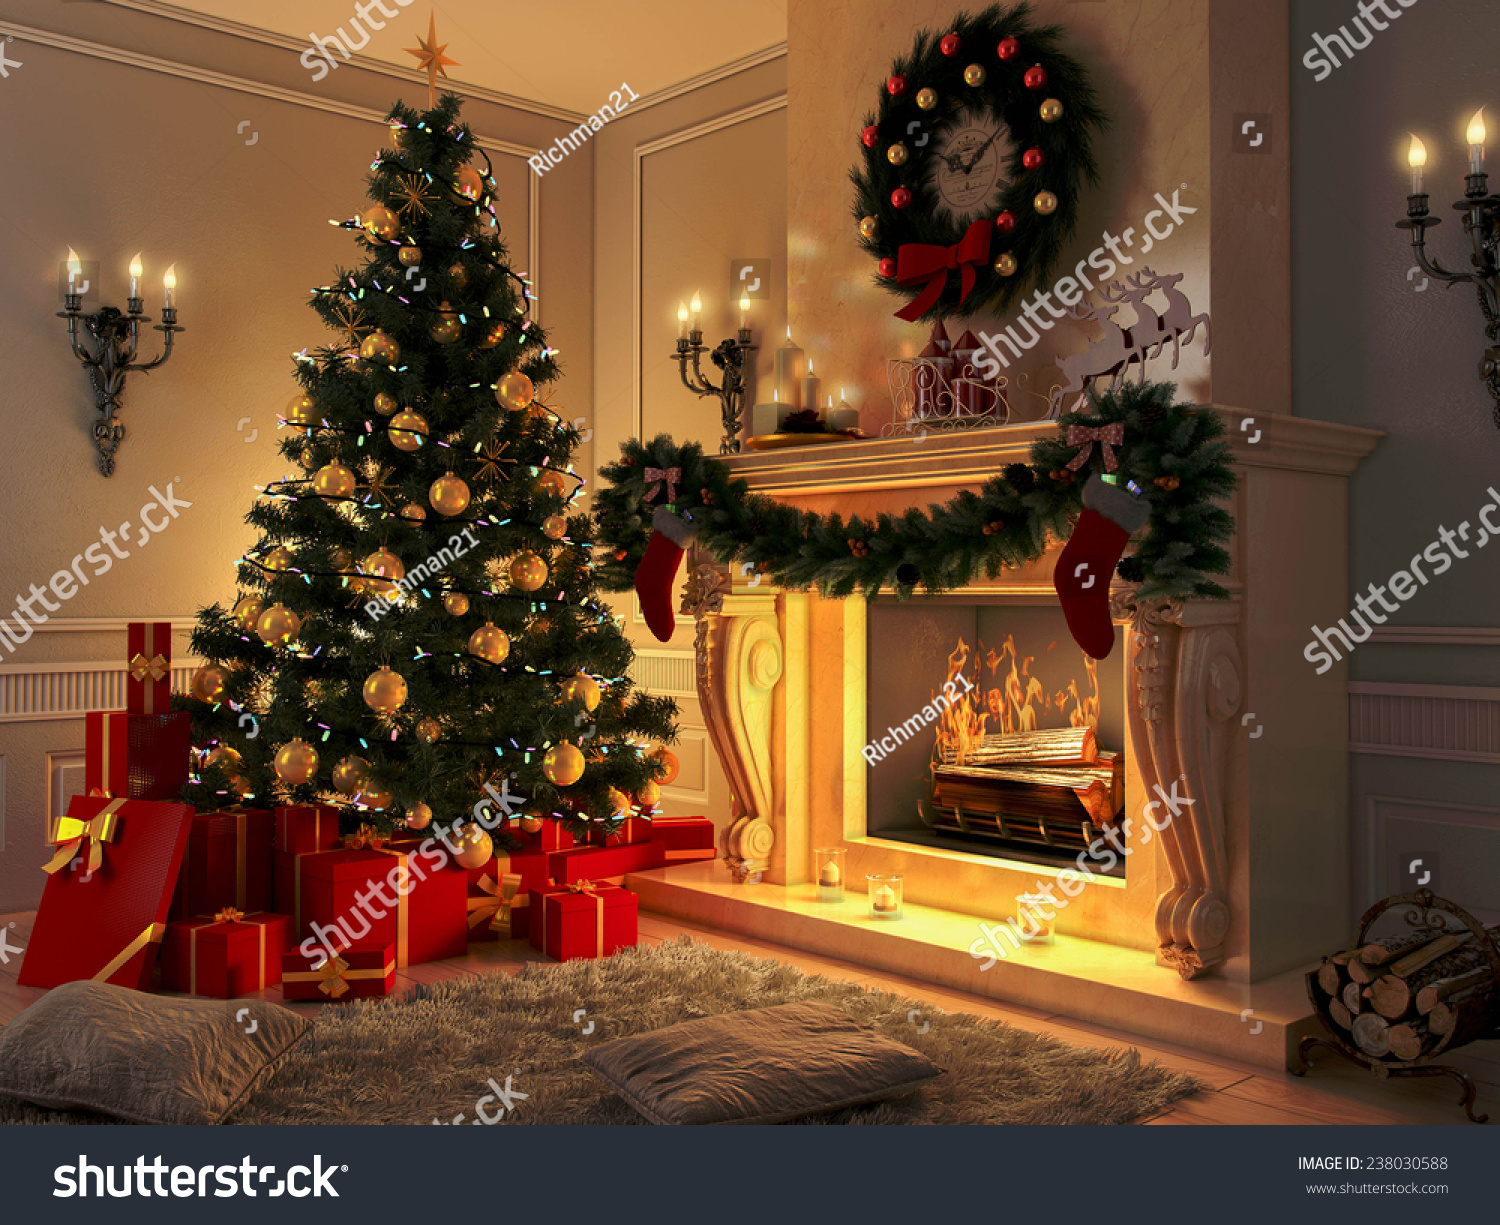 3d rendering new year interior christmas stock illustration 238030588 https www shutterstock com image illustration 3d rendering new year interior christmas 238030588